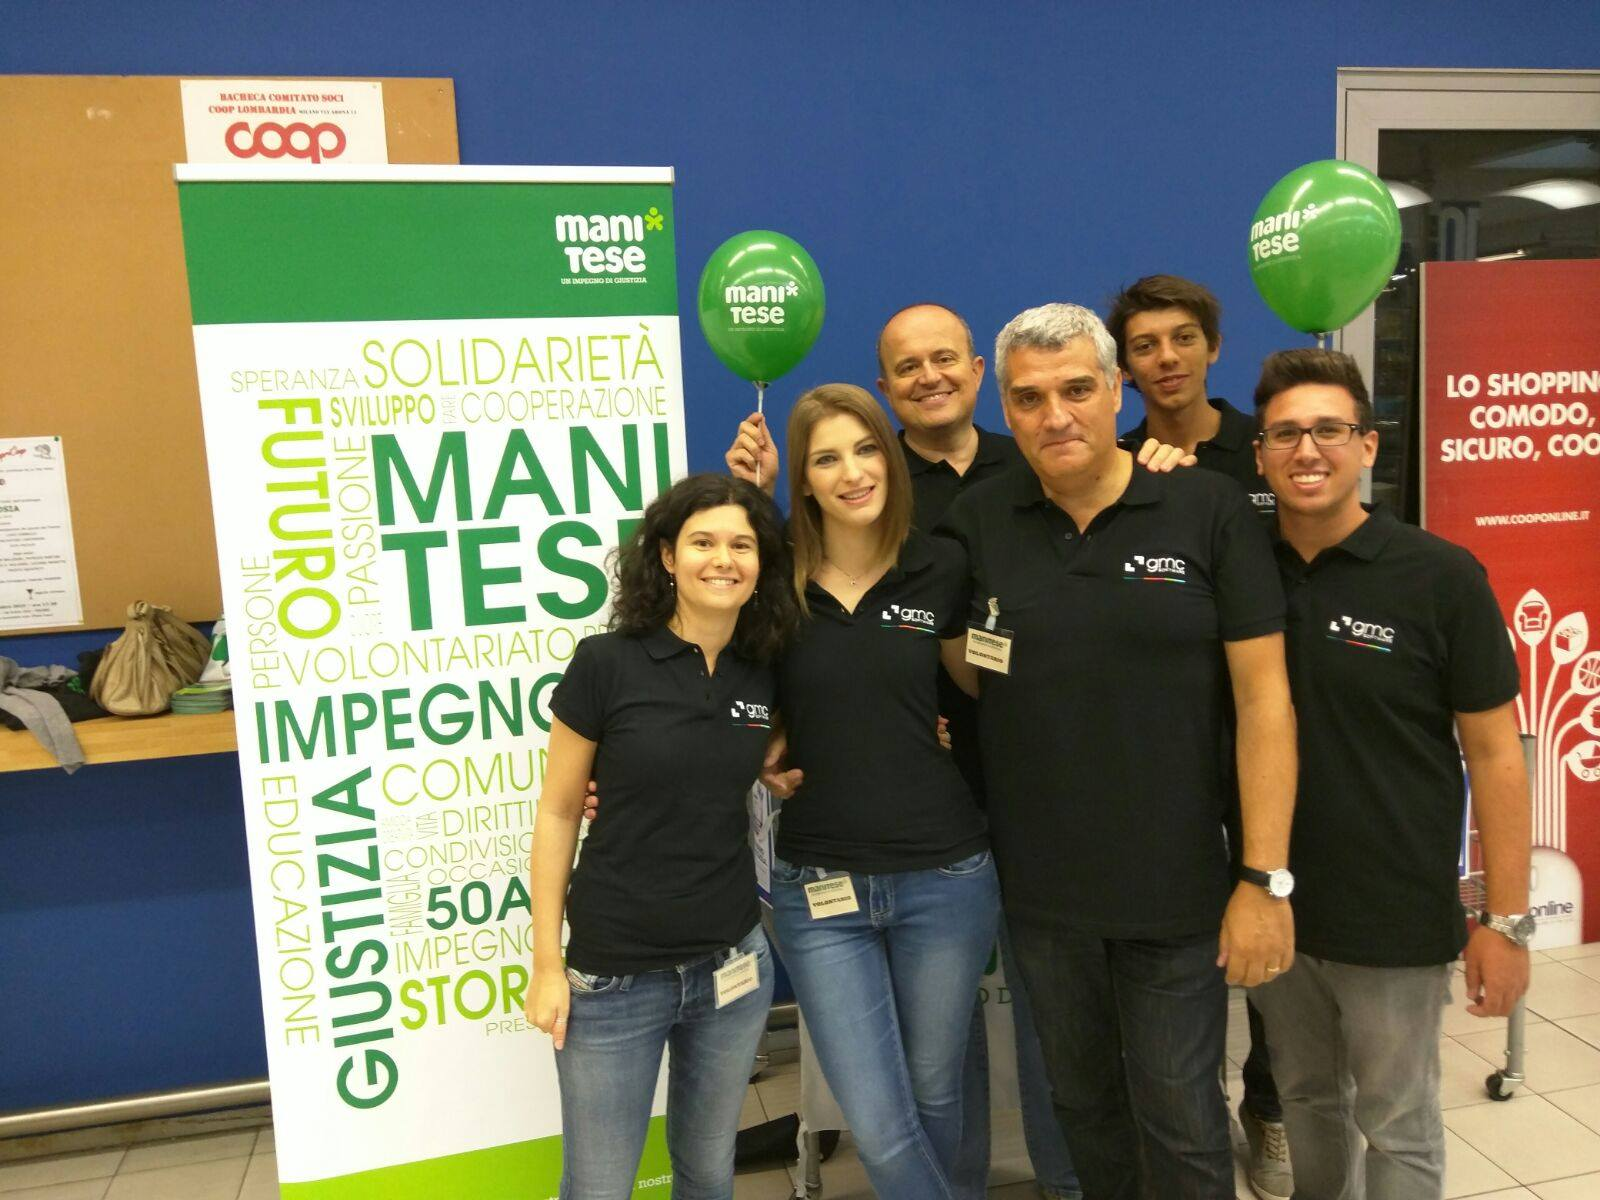 GMC Italia team collected school supplies